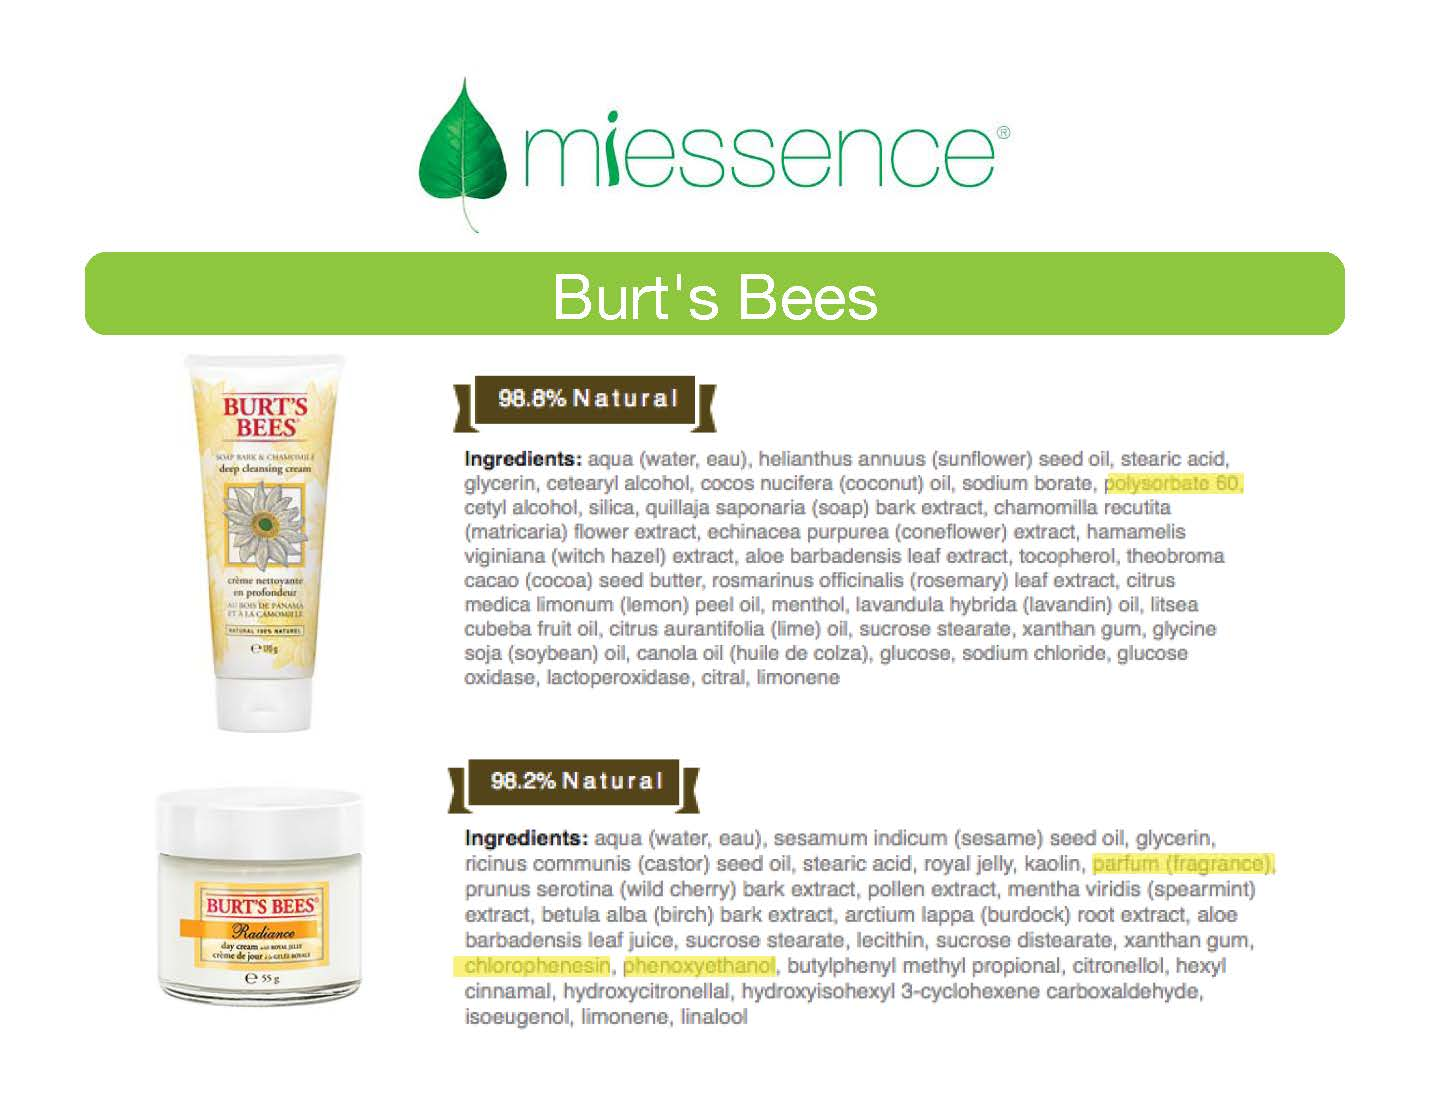 Is burts bees organic